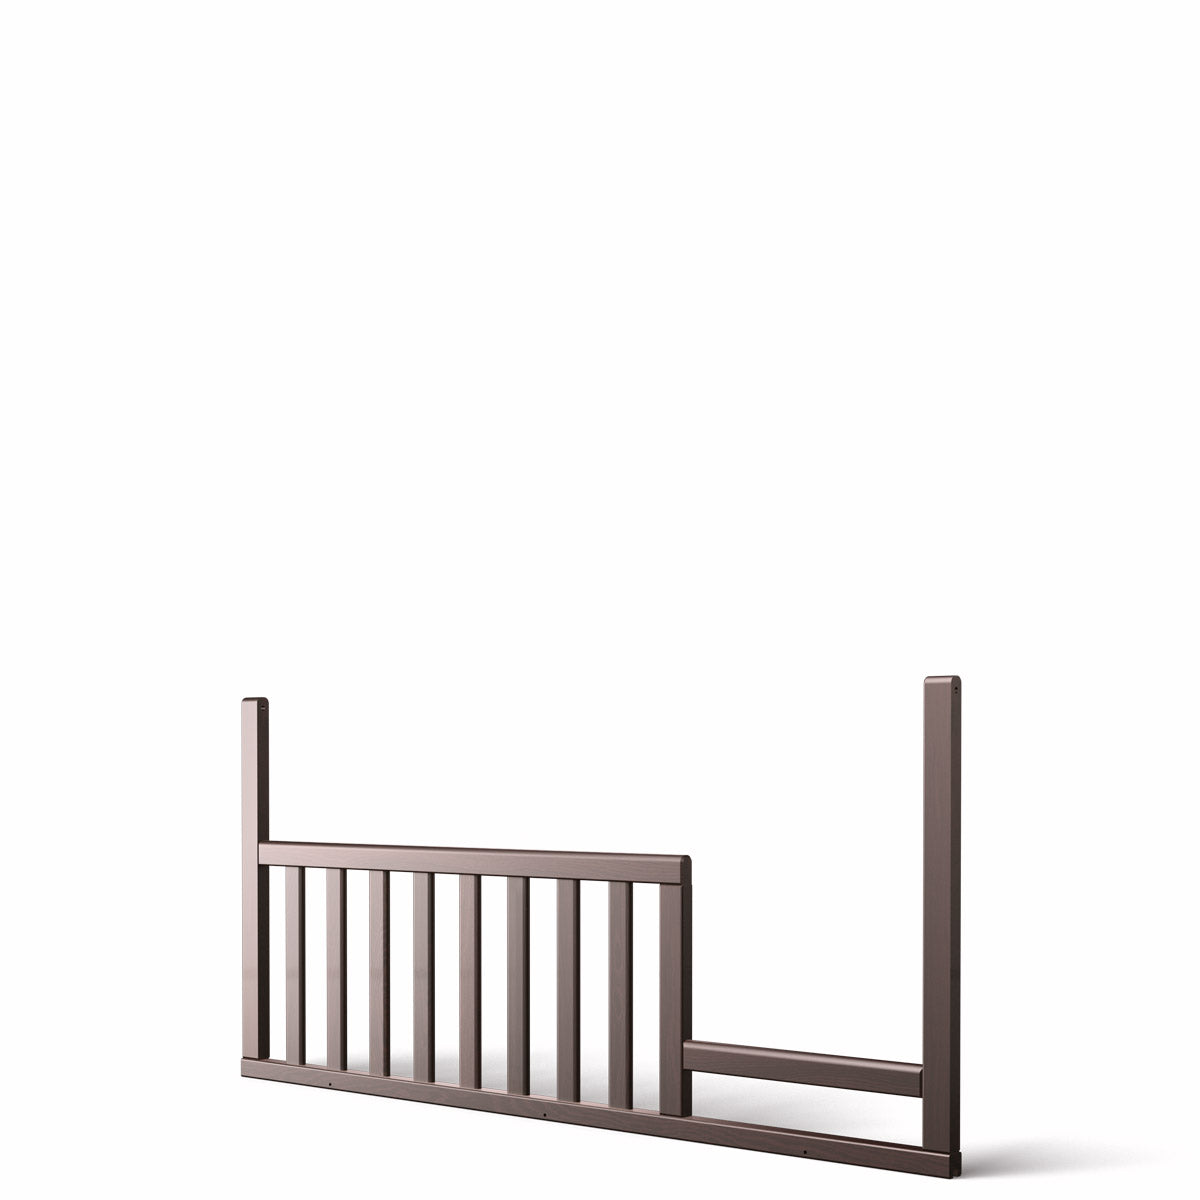 Romina Imperio Toddler Rail For 8501/8502